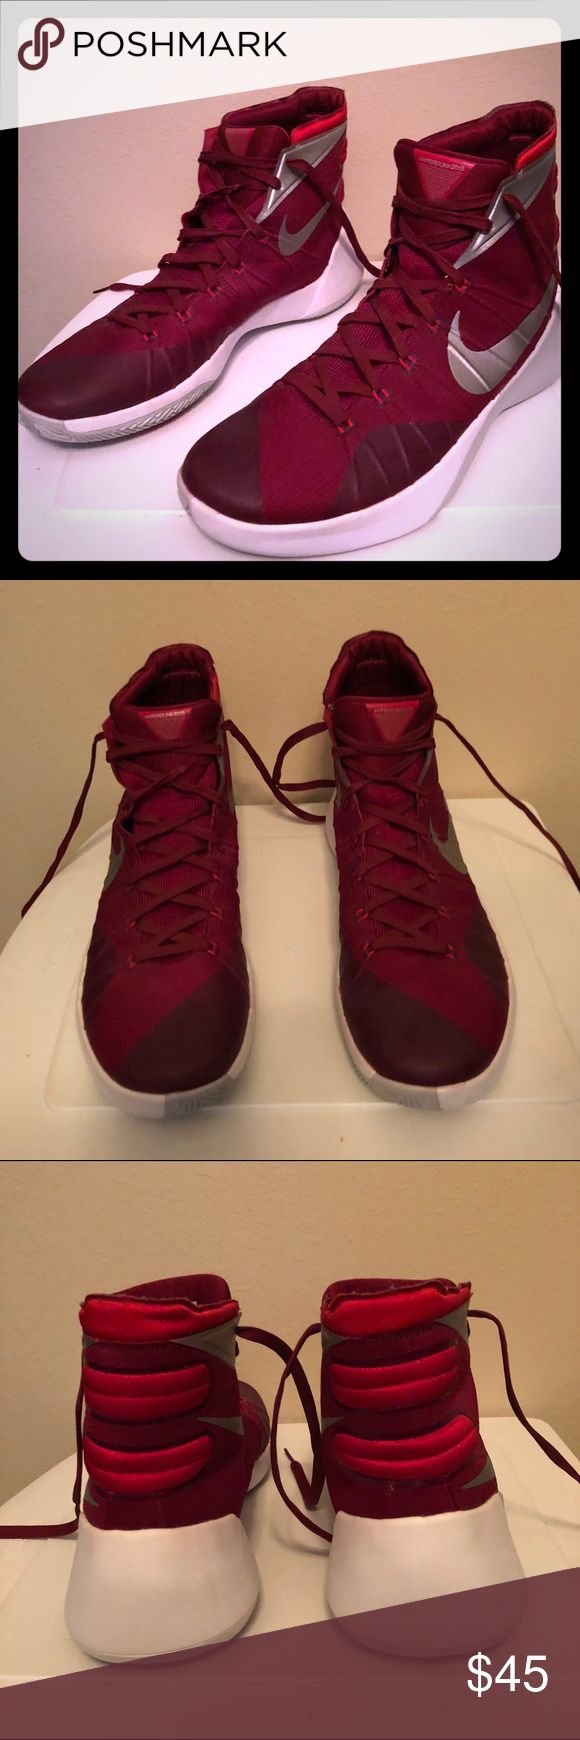 Nike Hyperdunk Red high top basketball shoes Look new! Check out the pictures! Nike Hyperdunk Red Silver Basketball High top shoes Nike Shoes Athletic Shoes